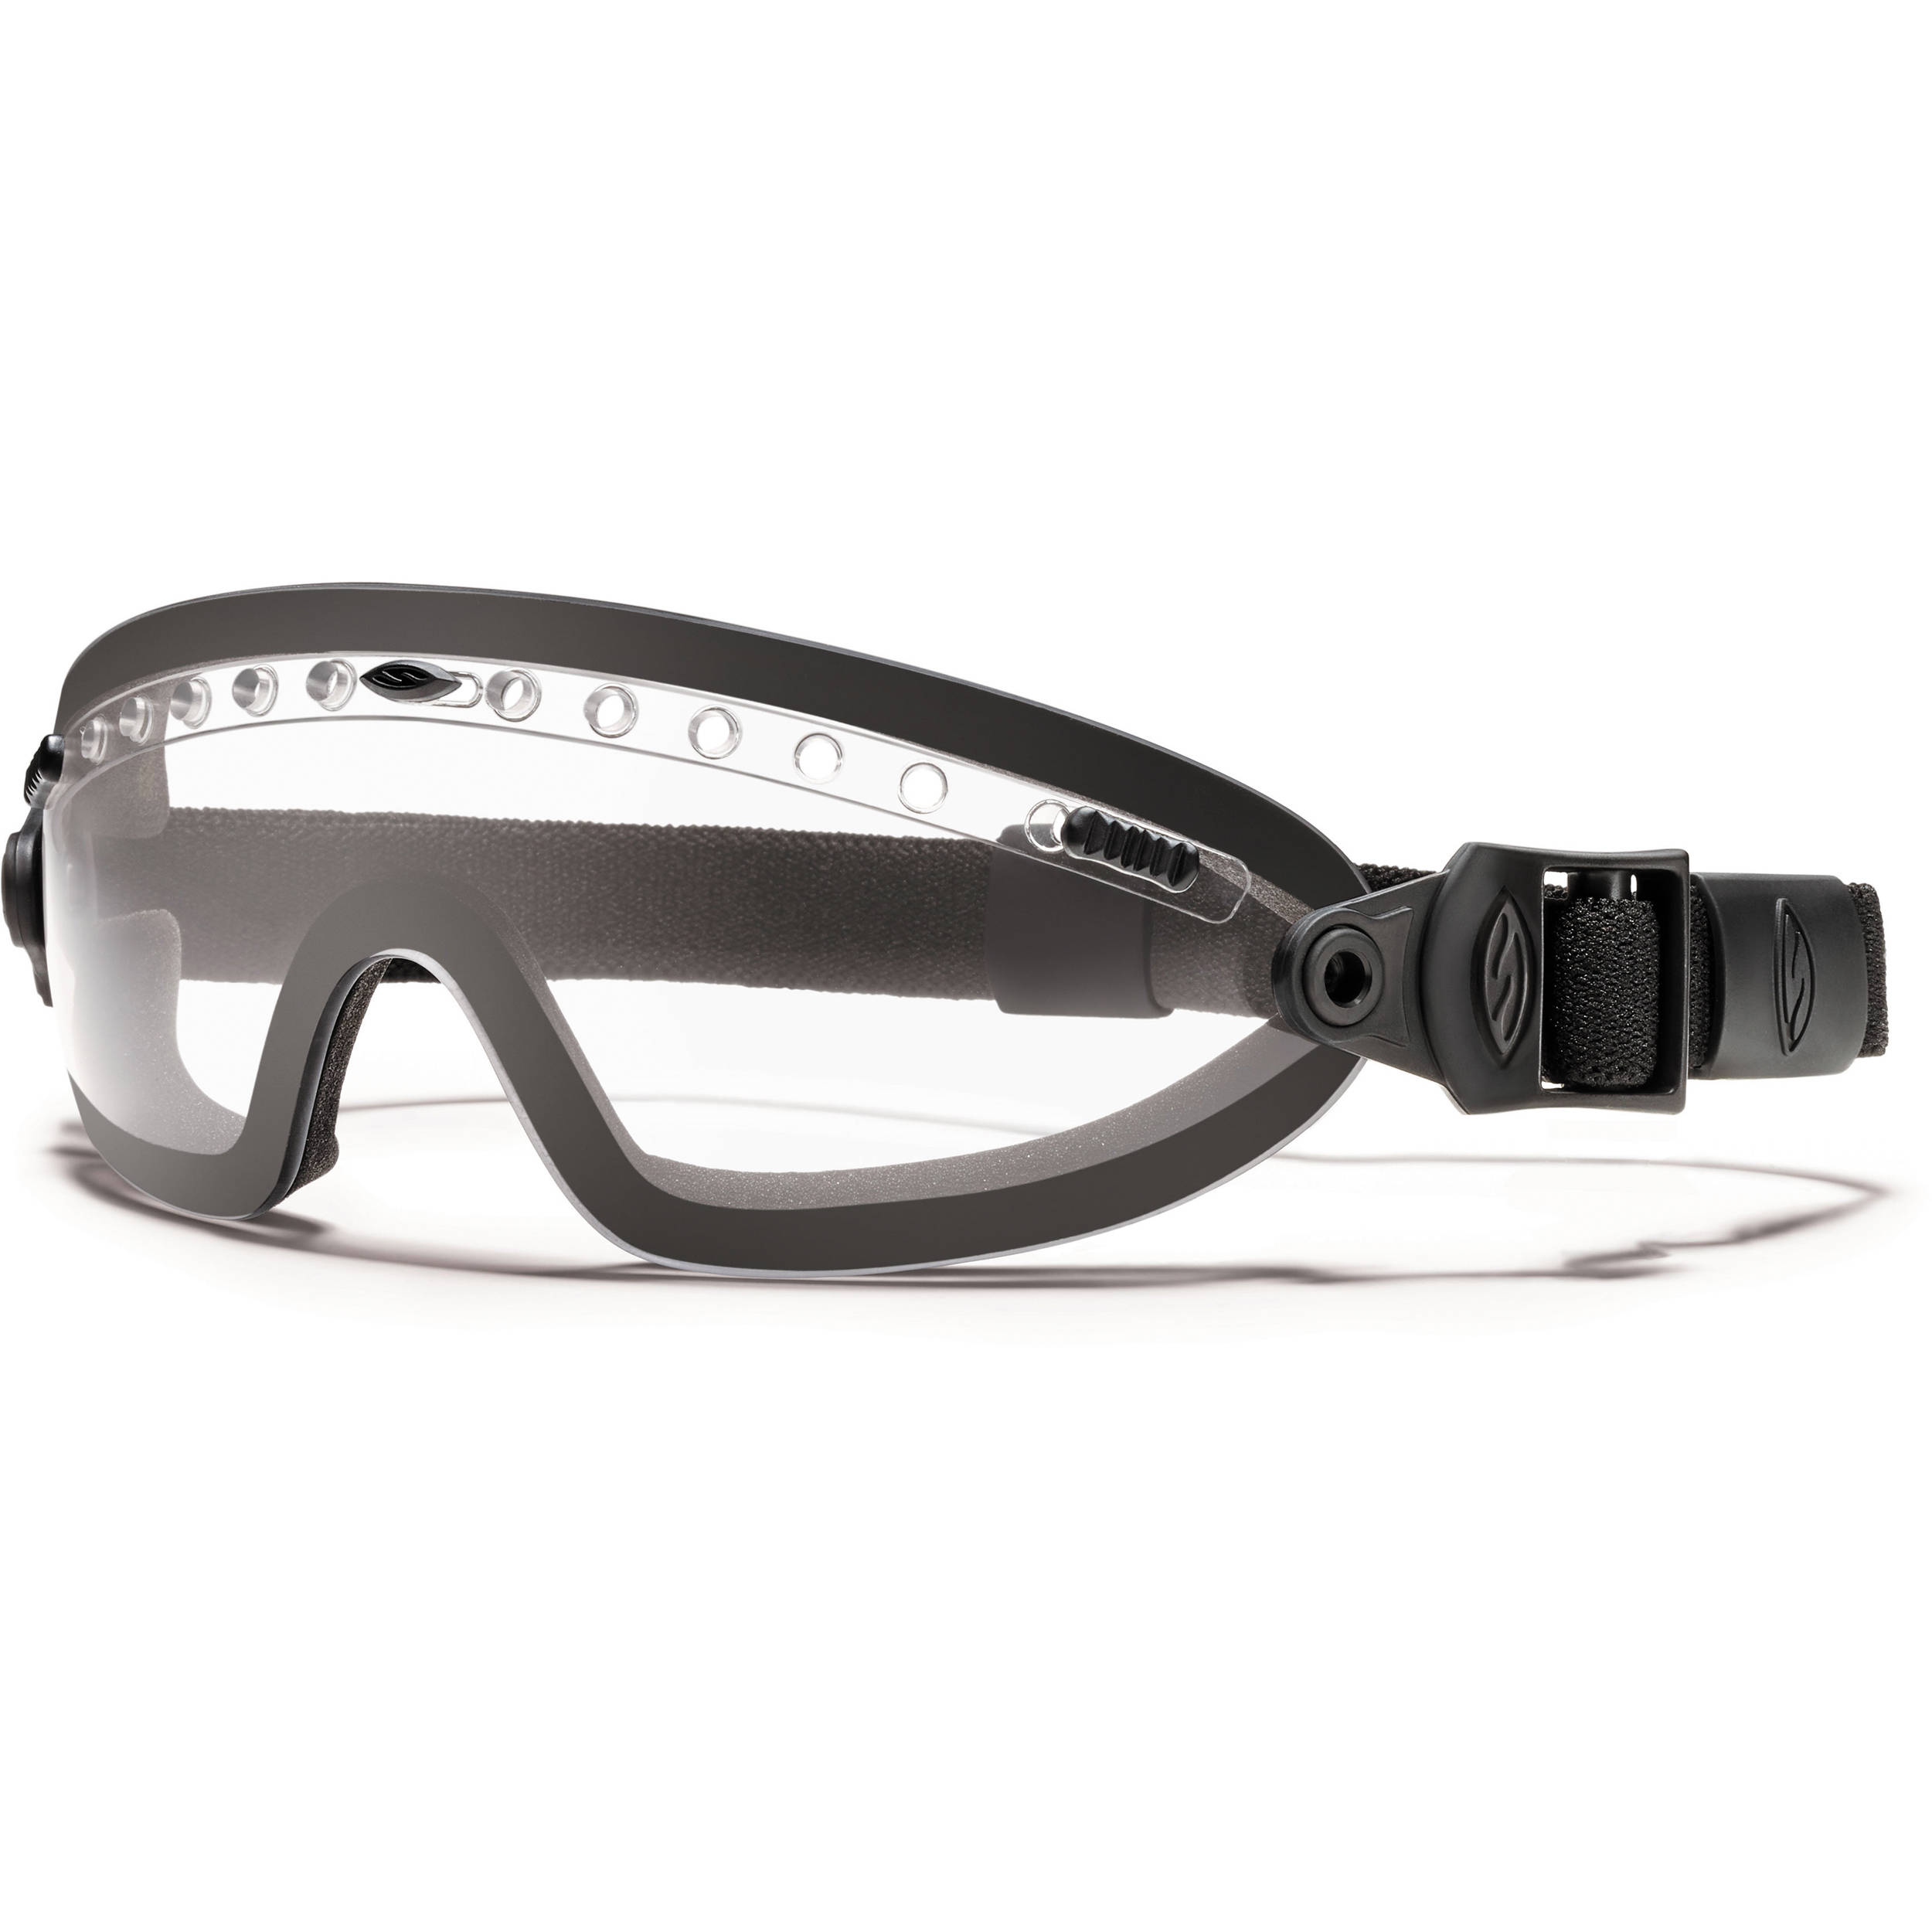 75a2eb6acf Smith Optics Boogie Sport Hybrid Goggle - (Black - Clear Lens - Asian Fit)